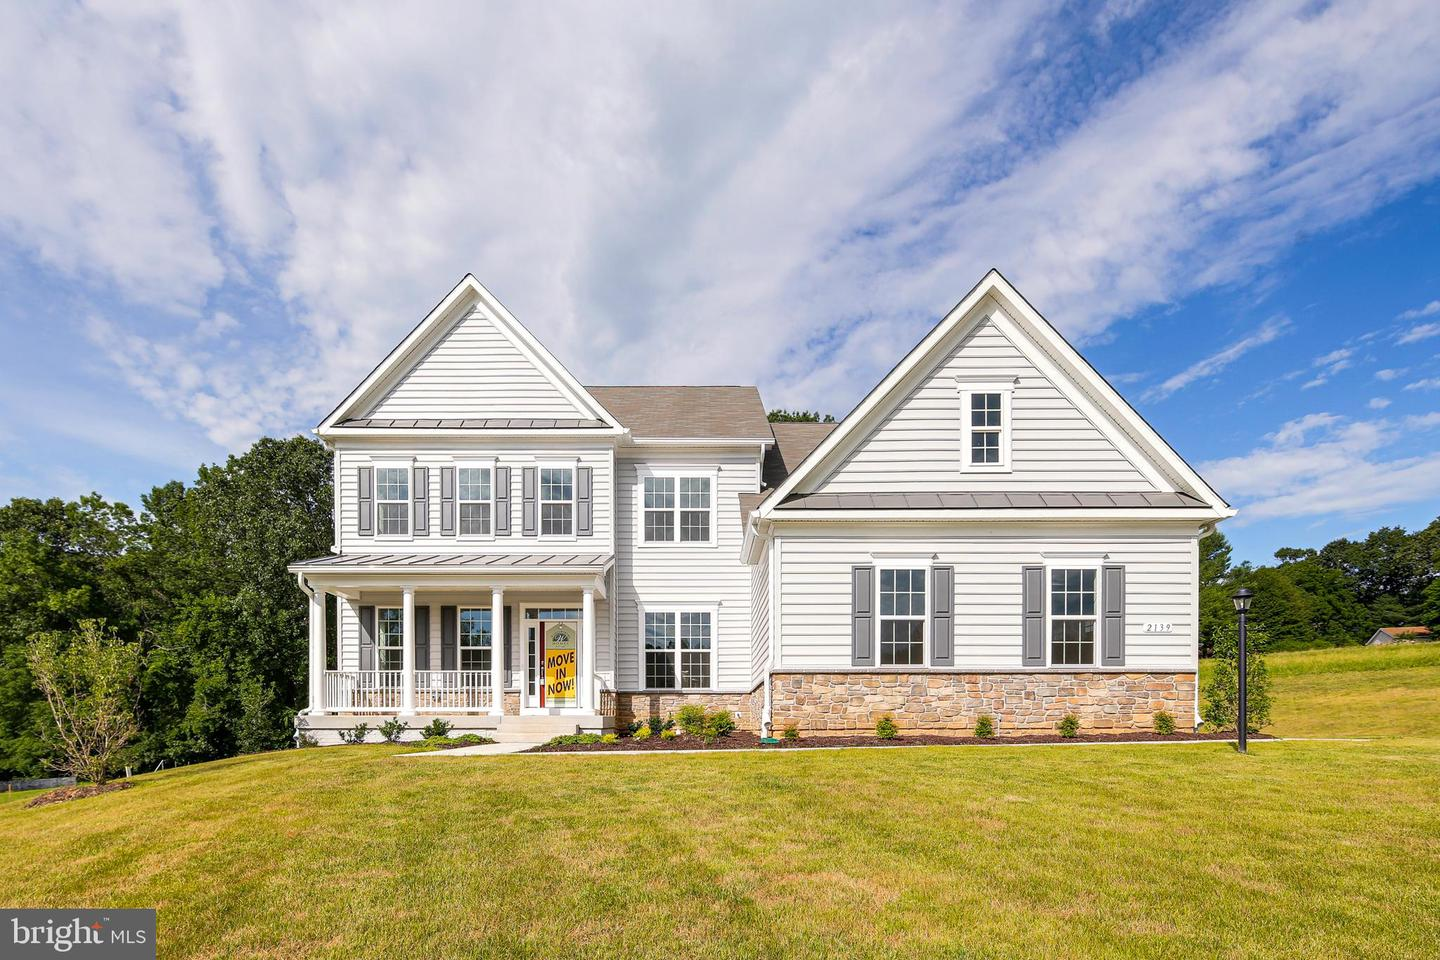 8509 ABBY LN, ELLICOTT CITY, Maryland 21042, 4 Bedrooms Bedrooms, ,4 BathroomsBathrooms,Single Family,For Sale,8509 ABBY LN,MDHW274136